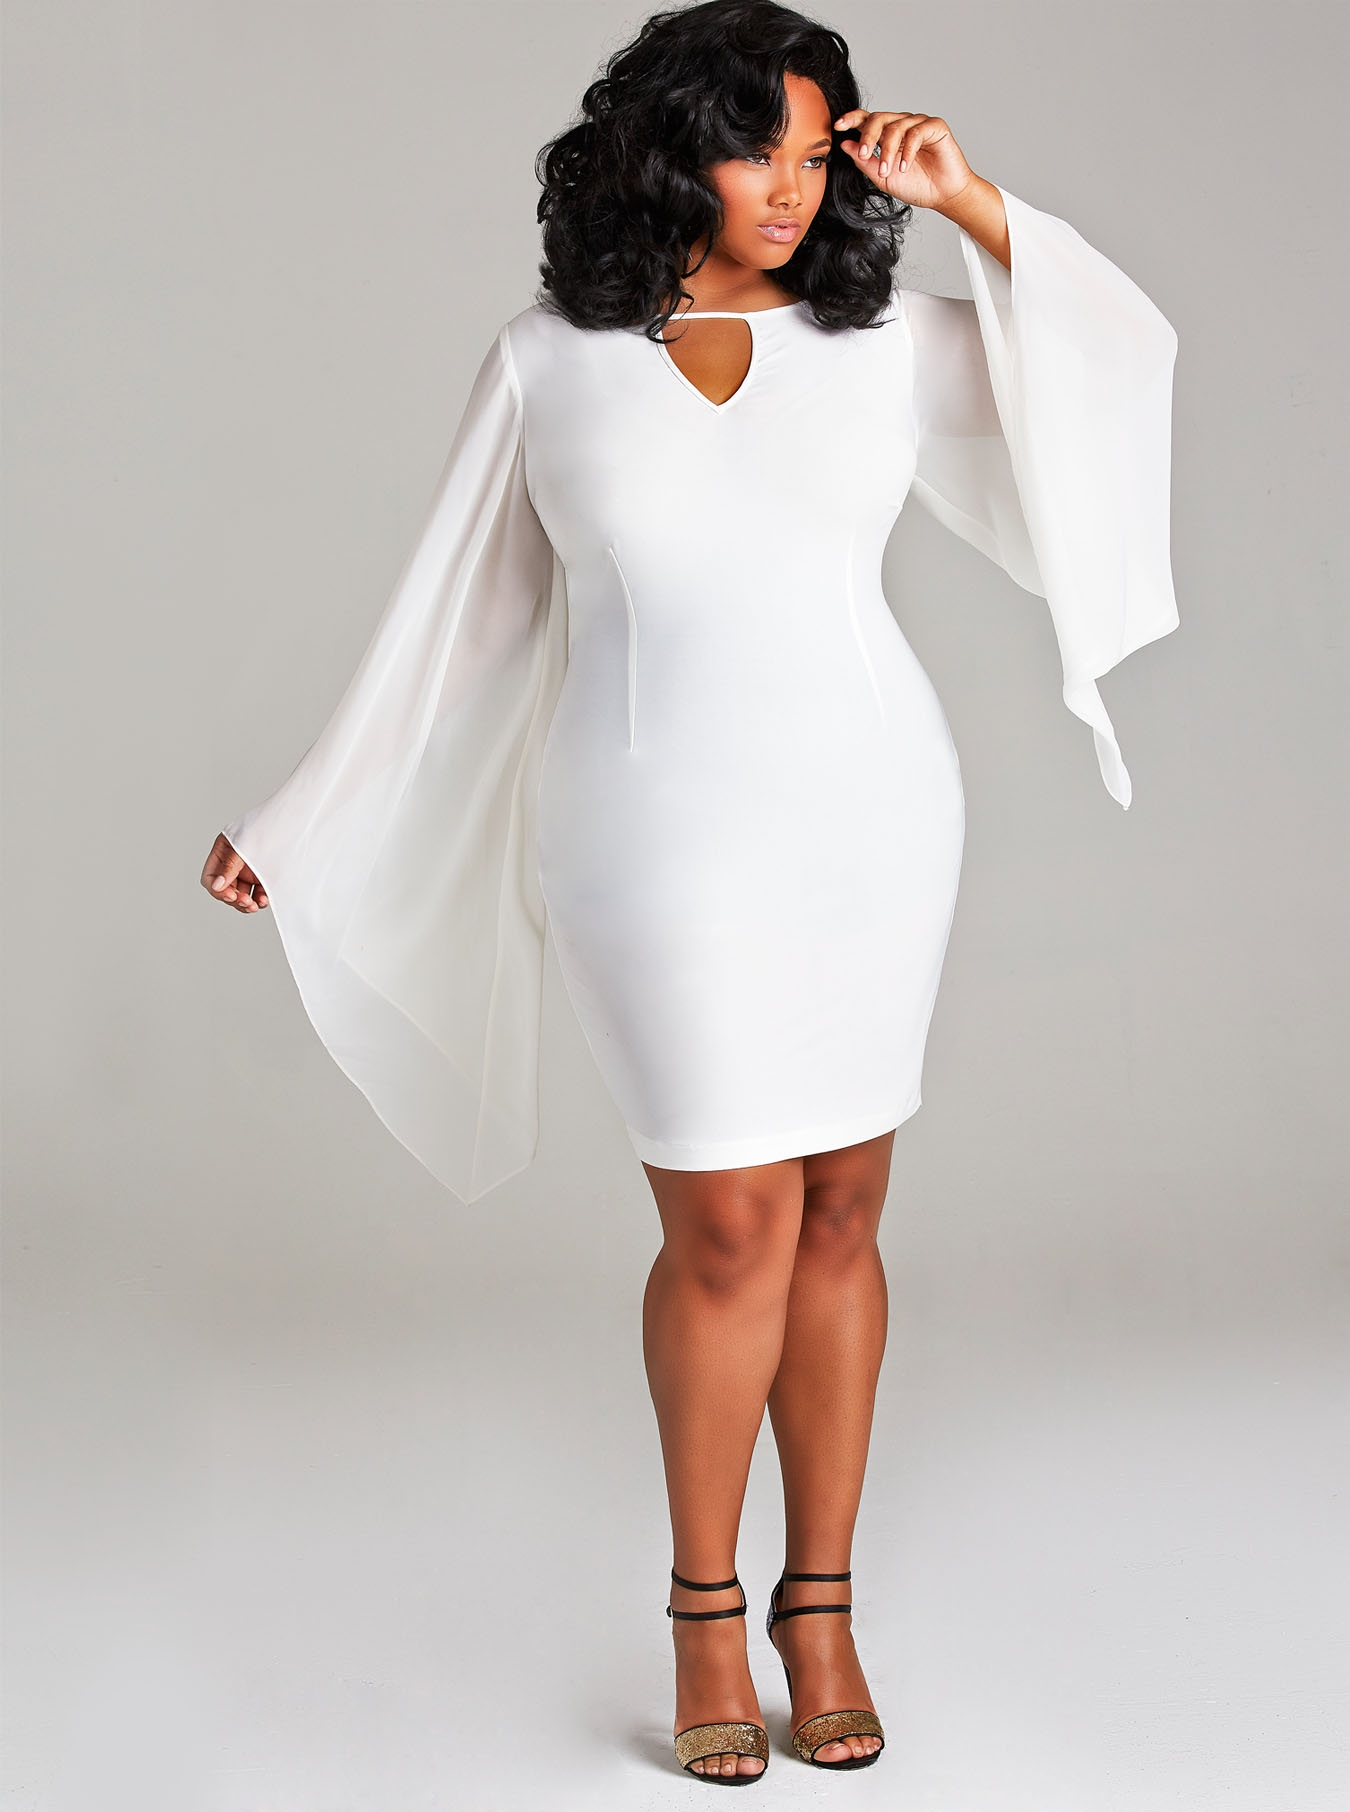 Evening in White Plus Size Cocktail Dresses